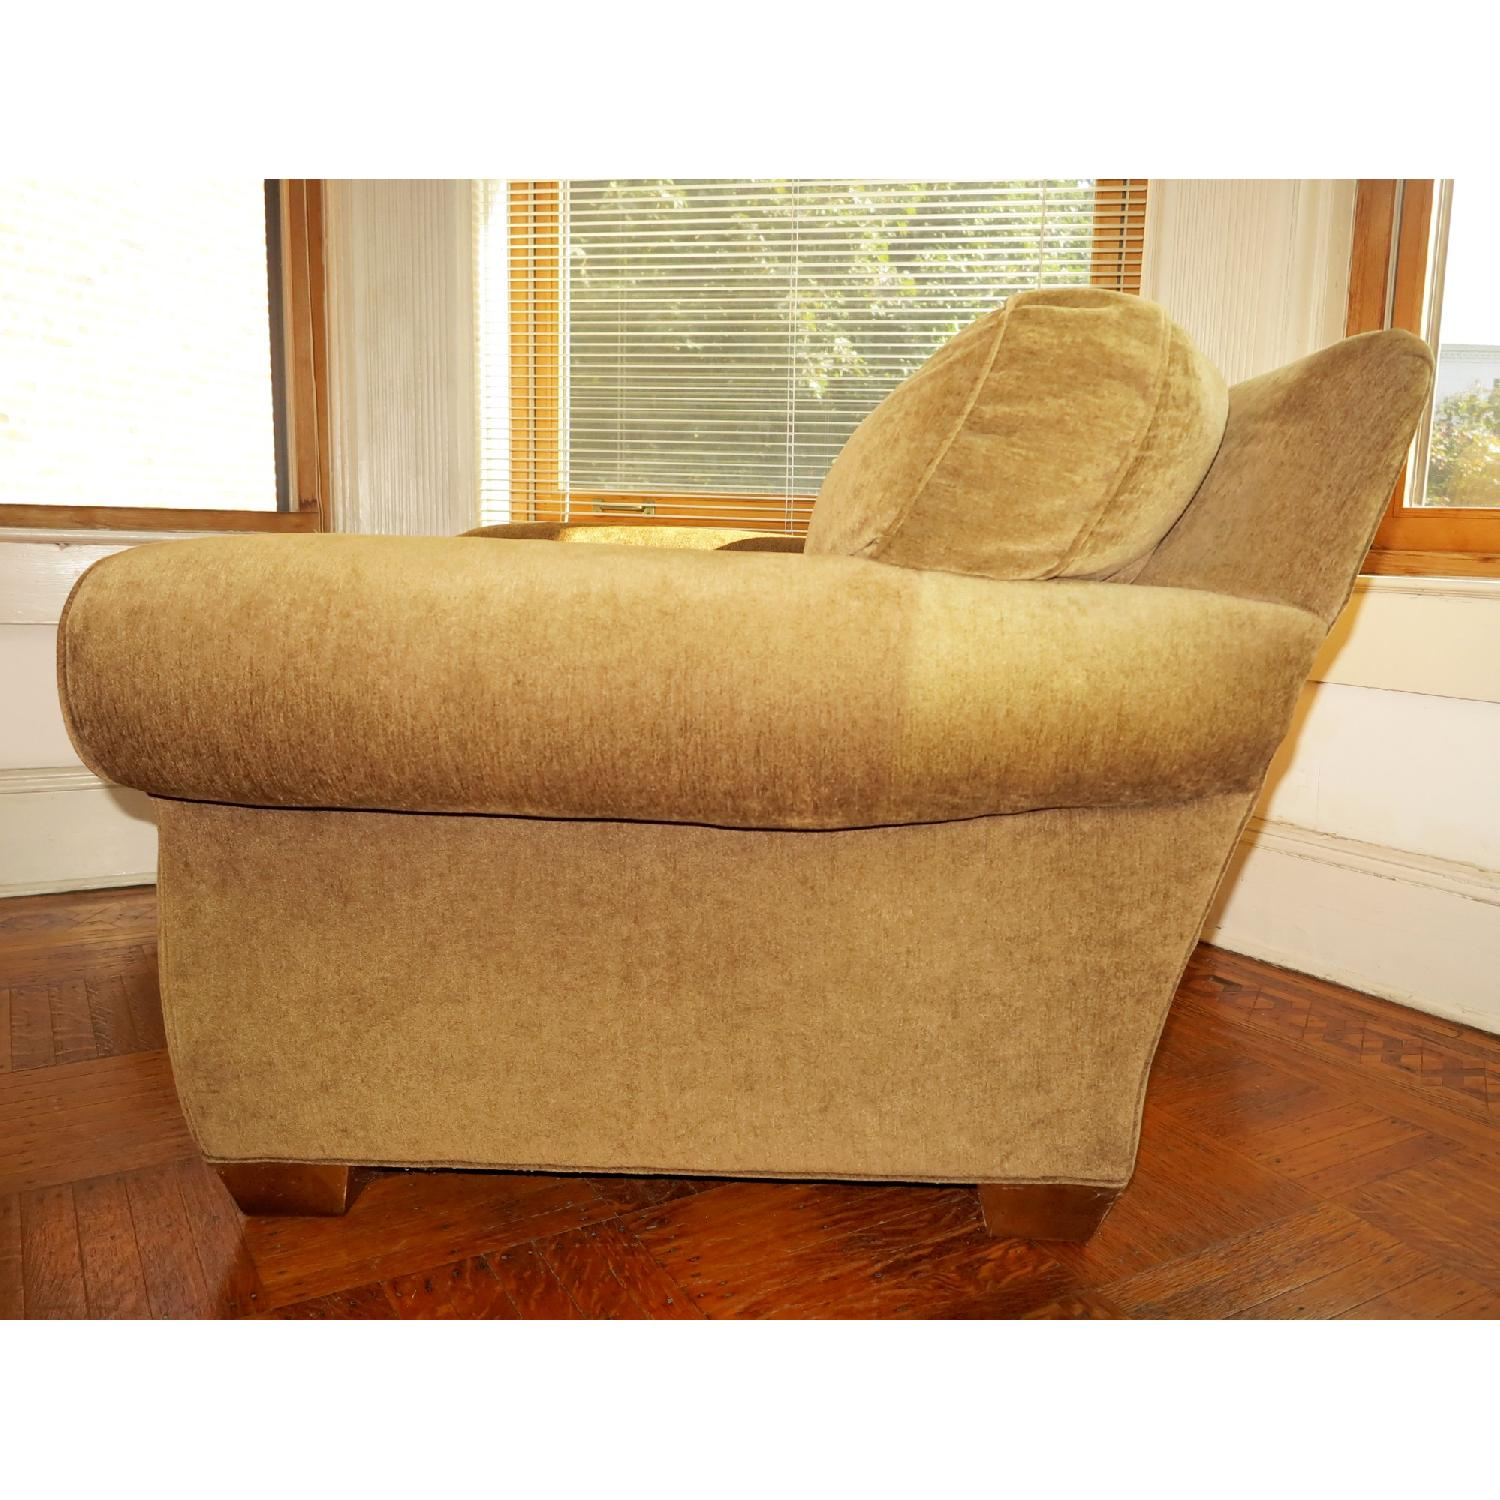 Lee Industries Handcrafted Armchair & Ottoman - image-6